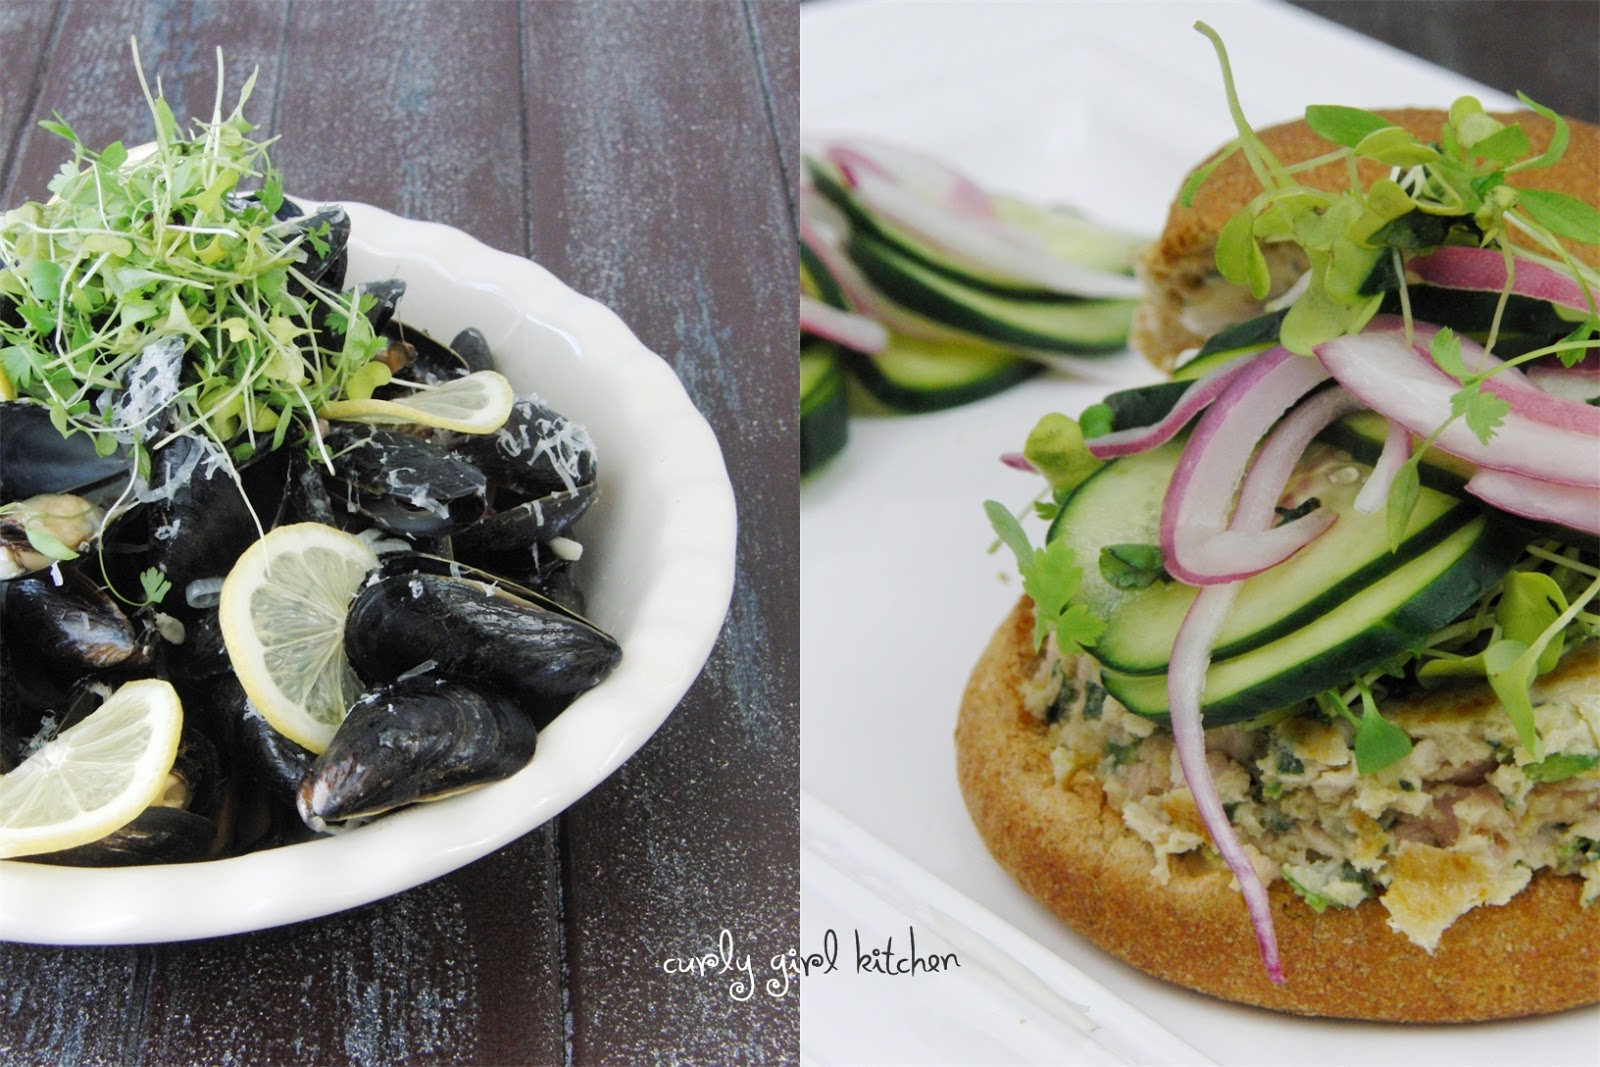 ... .com/2013/05/steamed-mussels-and-thai-tuna-burgers.html